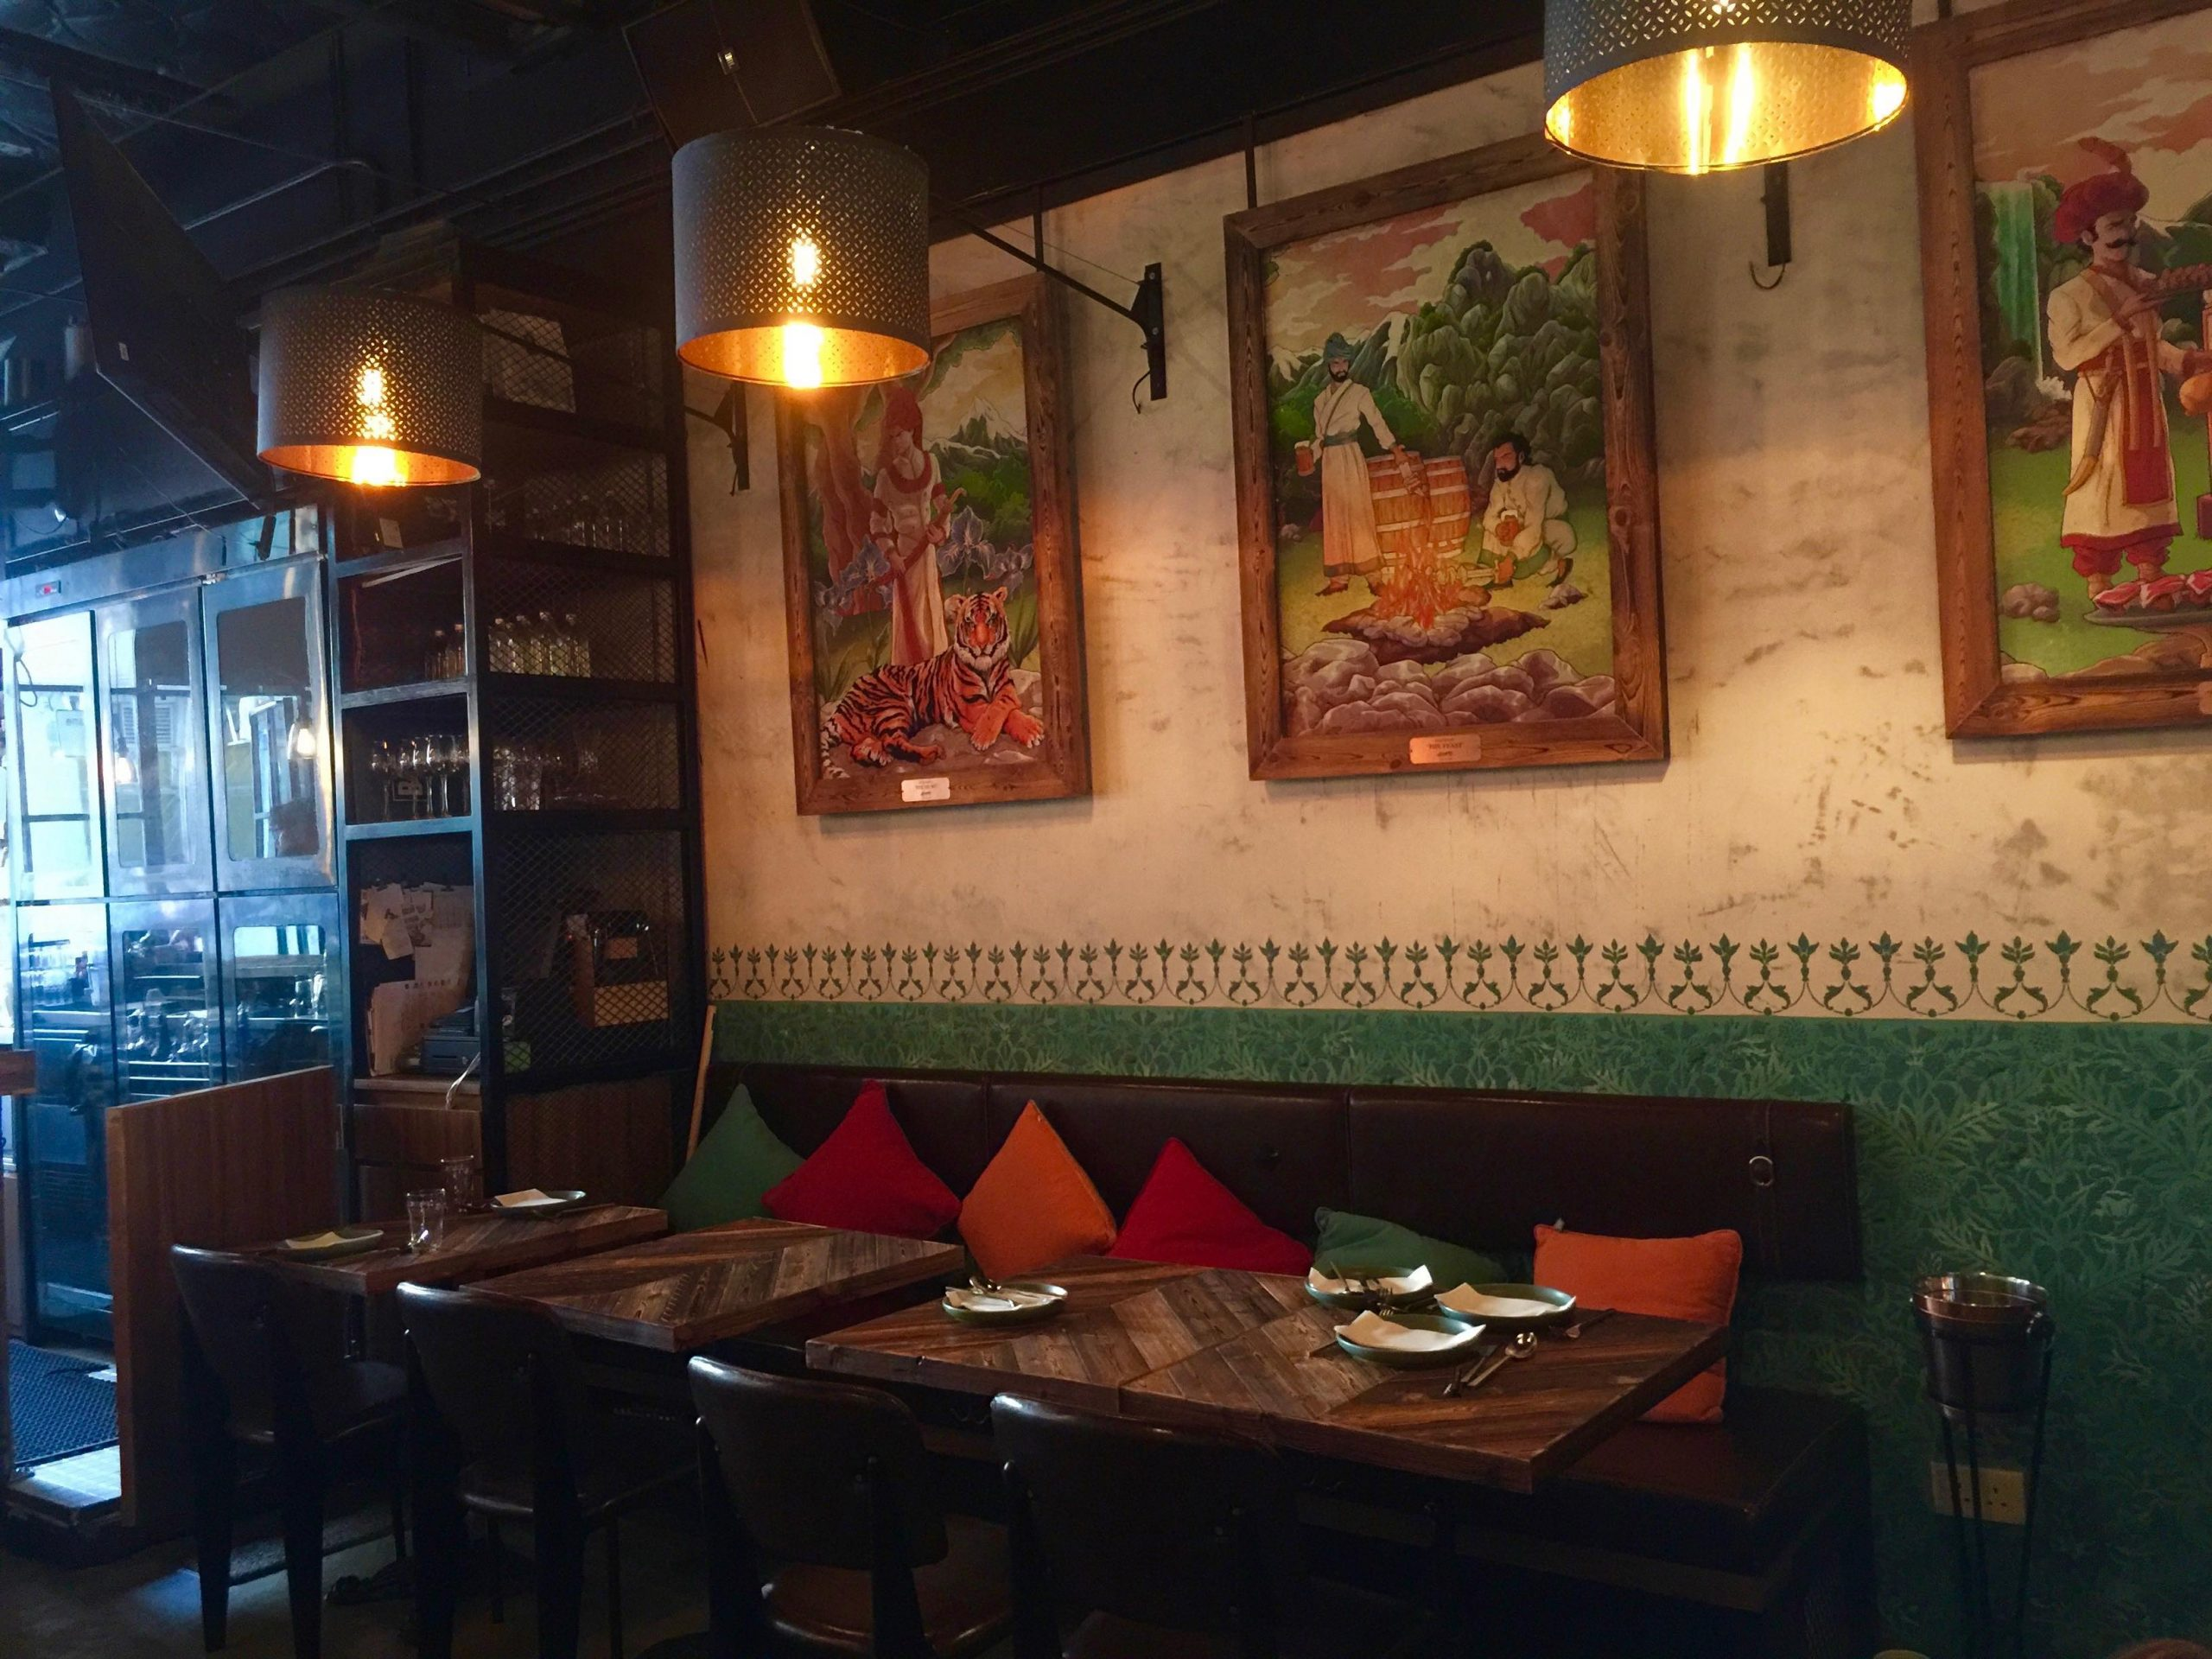 Nearby metro restaurant bar for Rent in Sai Ying Pun HK